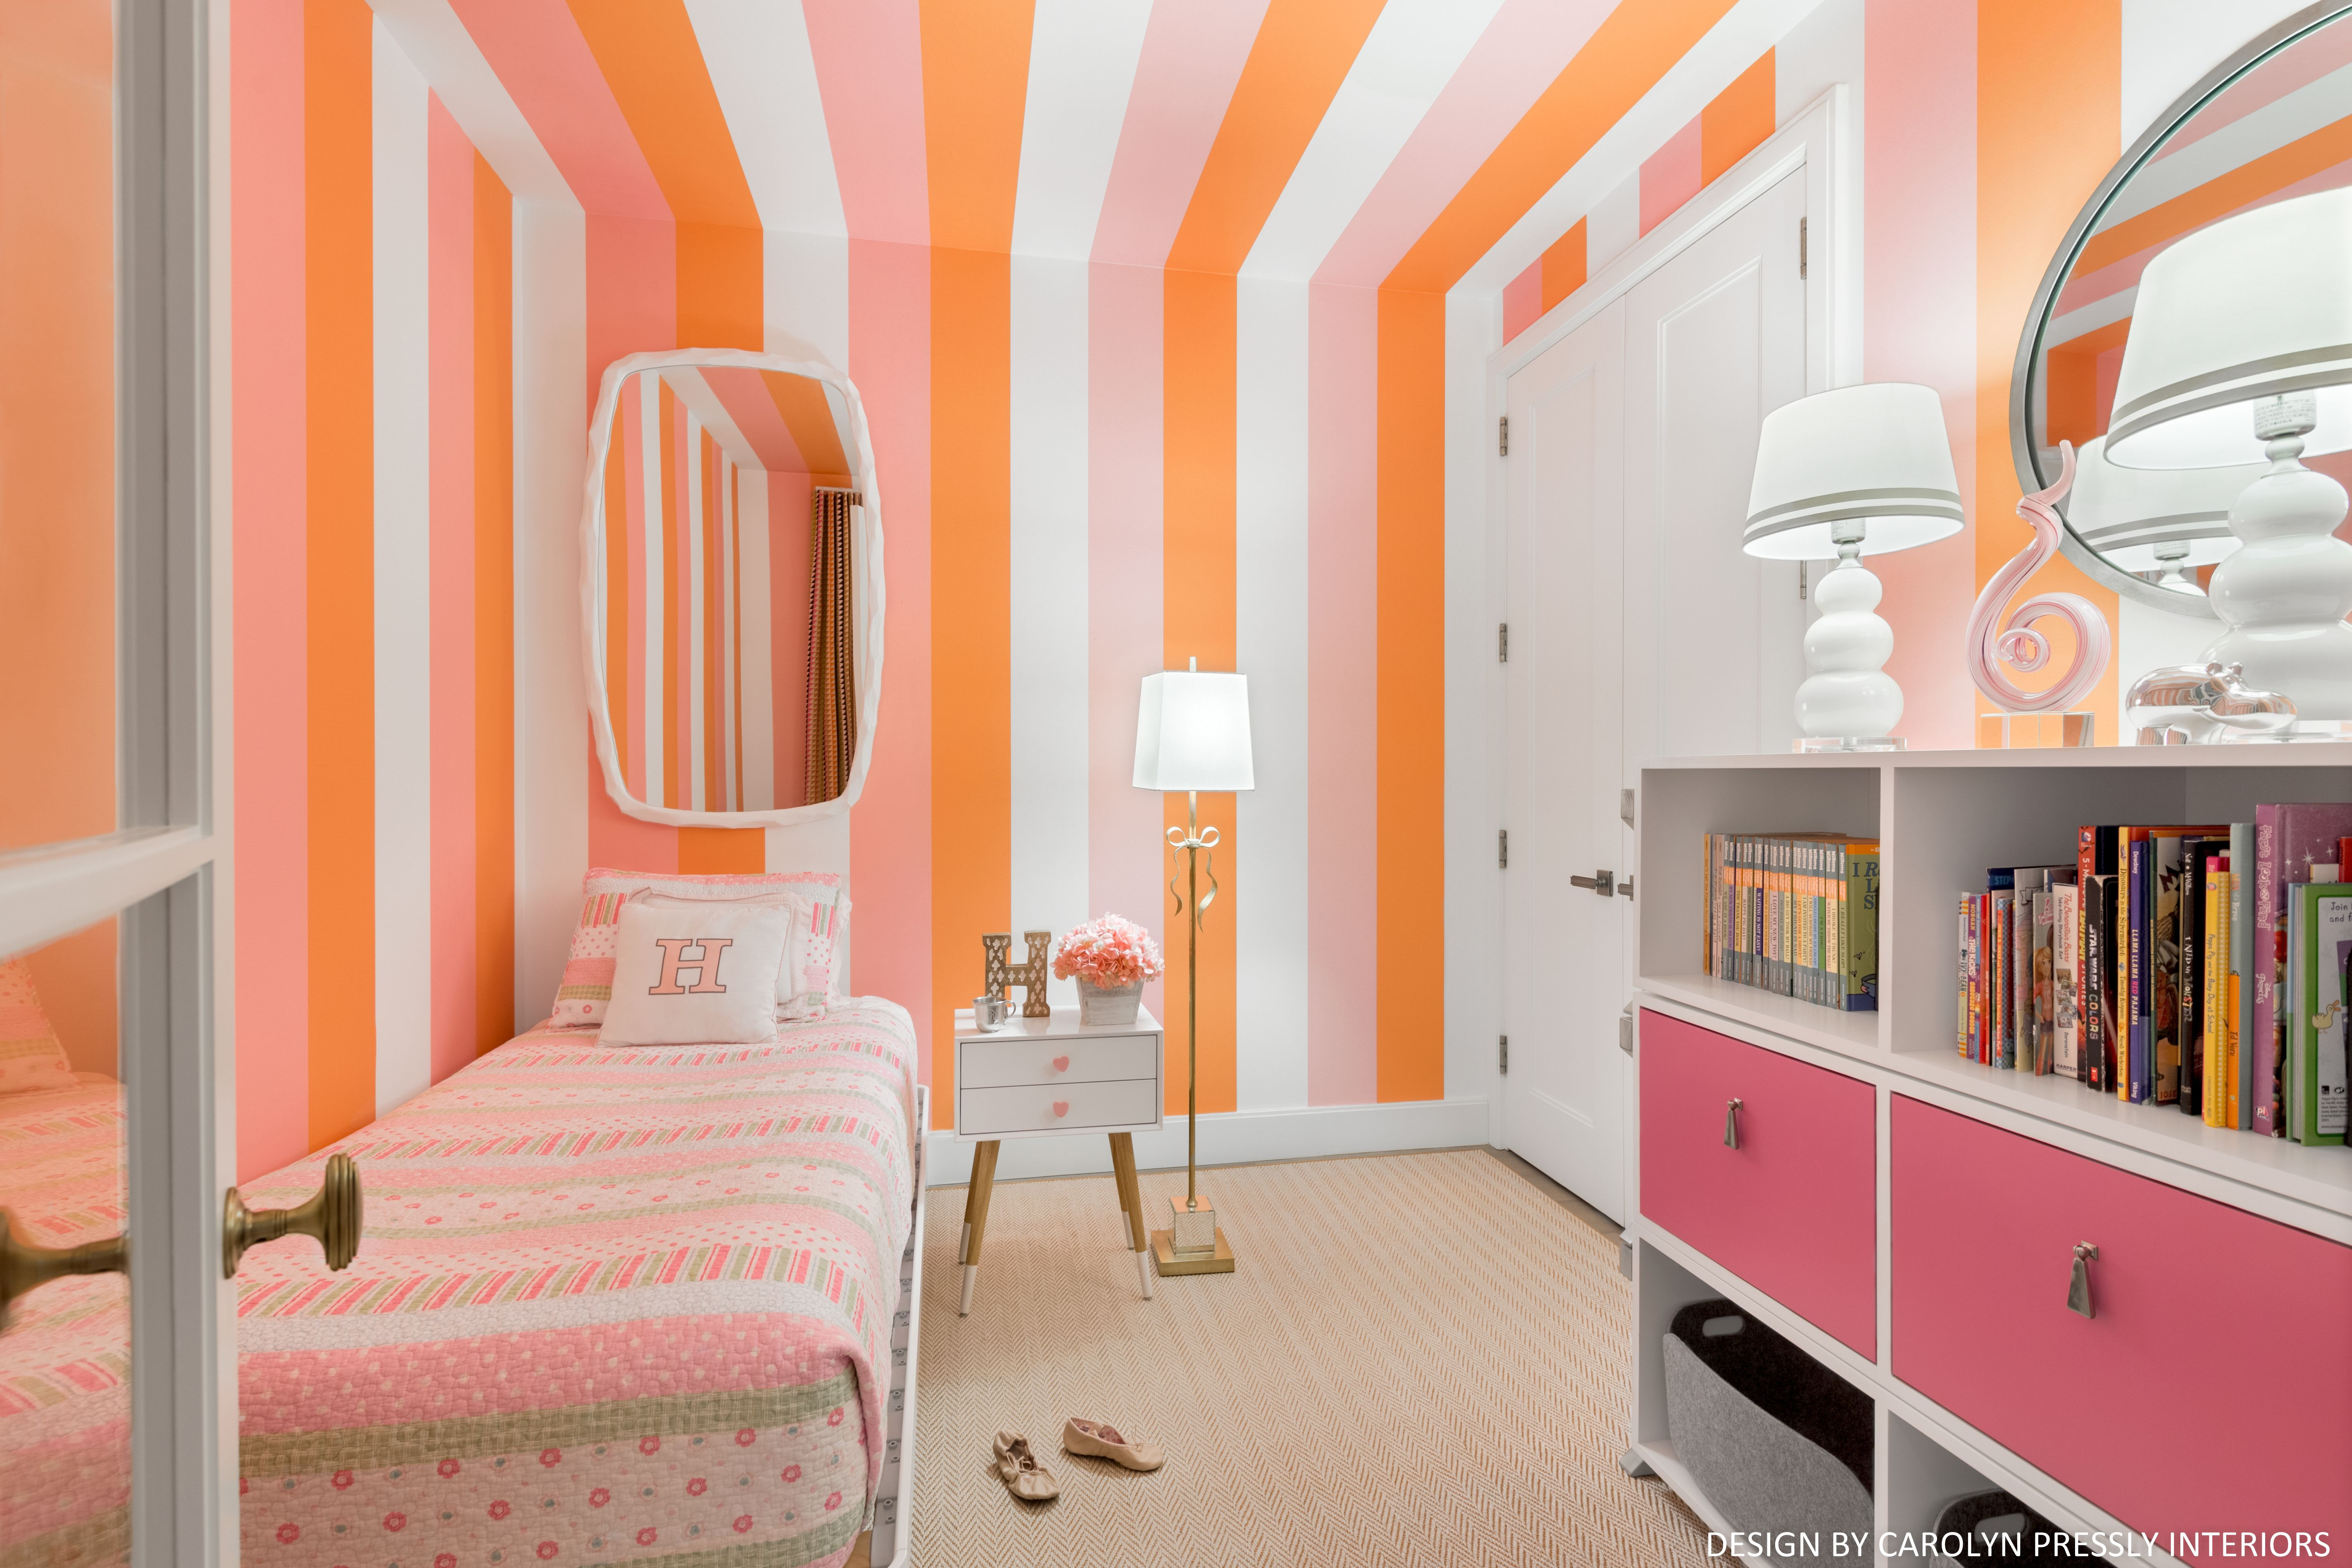 Bright pink and orange striped wallpaper. Ceiling